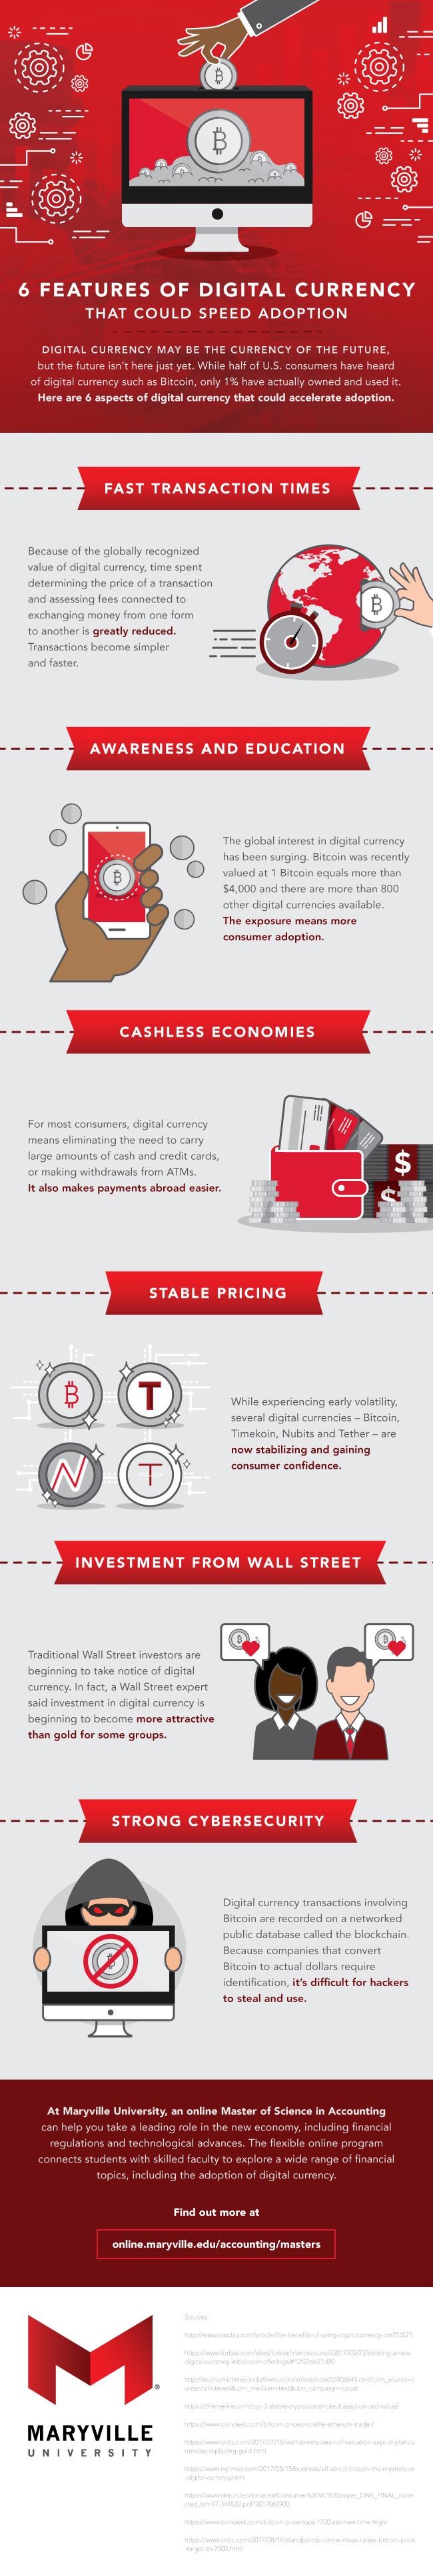 Six Features of Digital Currency Infographic